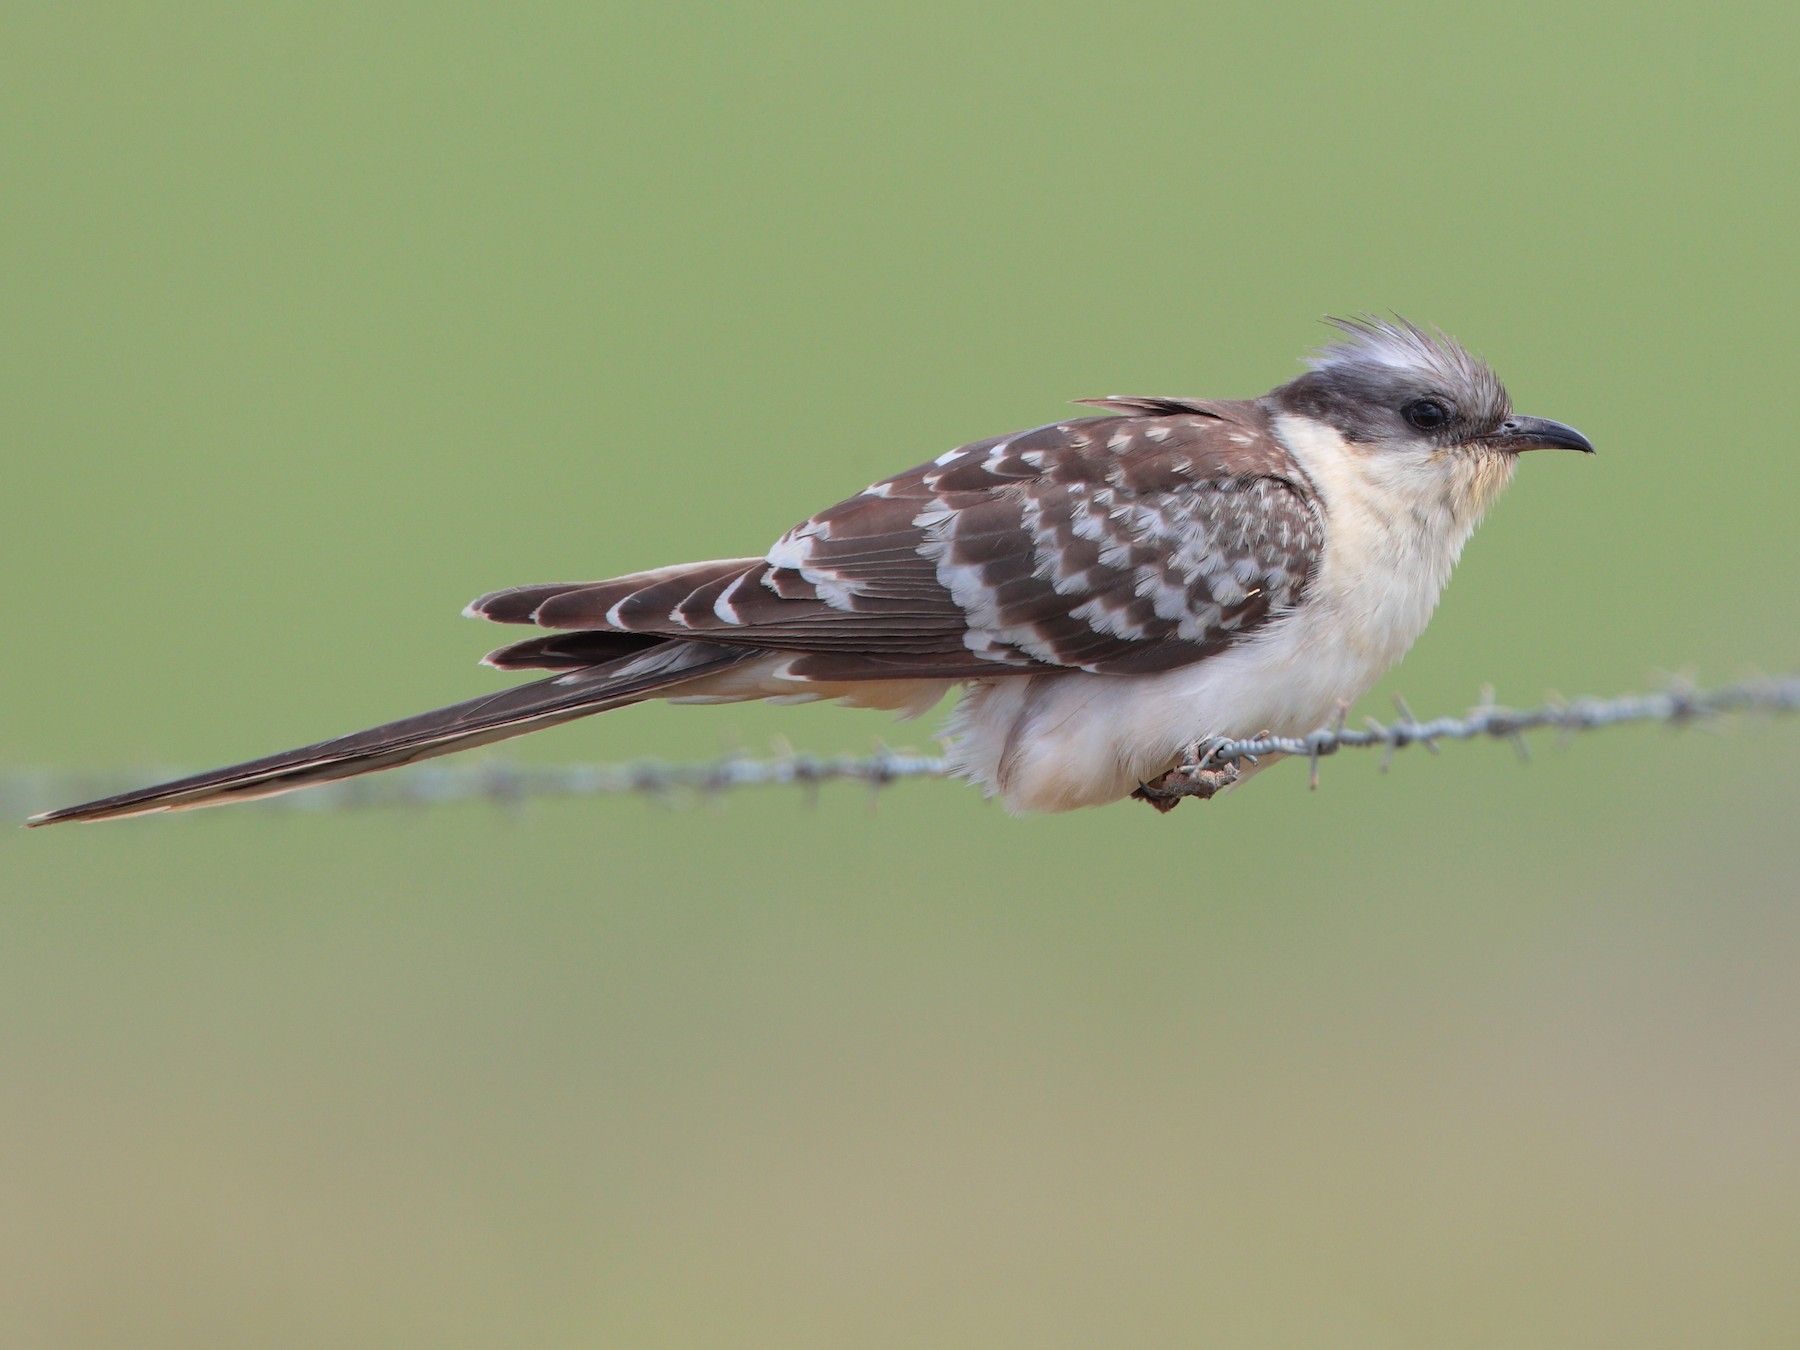 Great Spotted Cuckoo - Pedro Marques